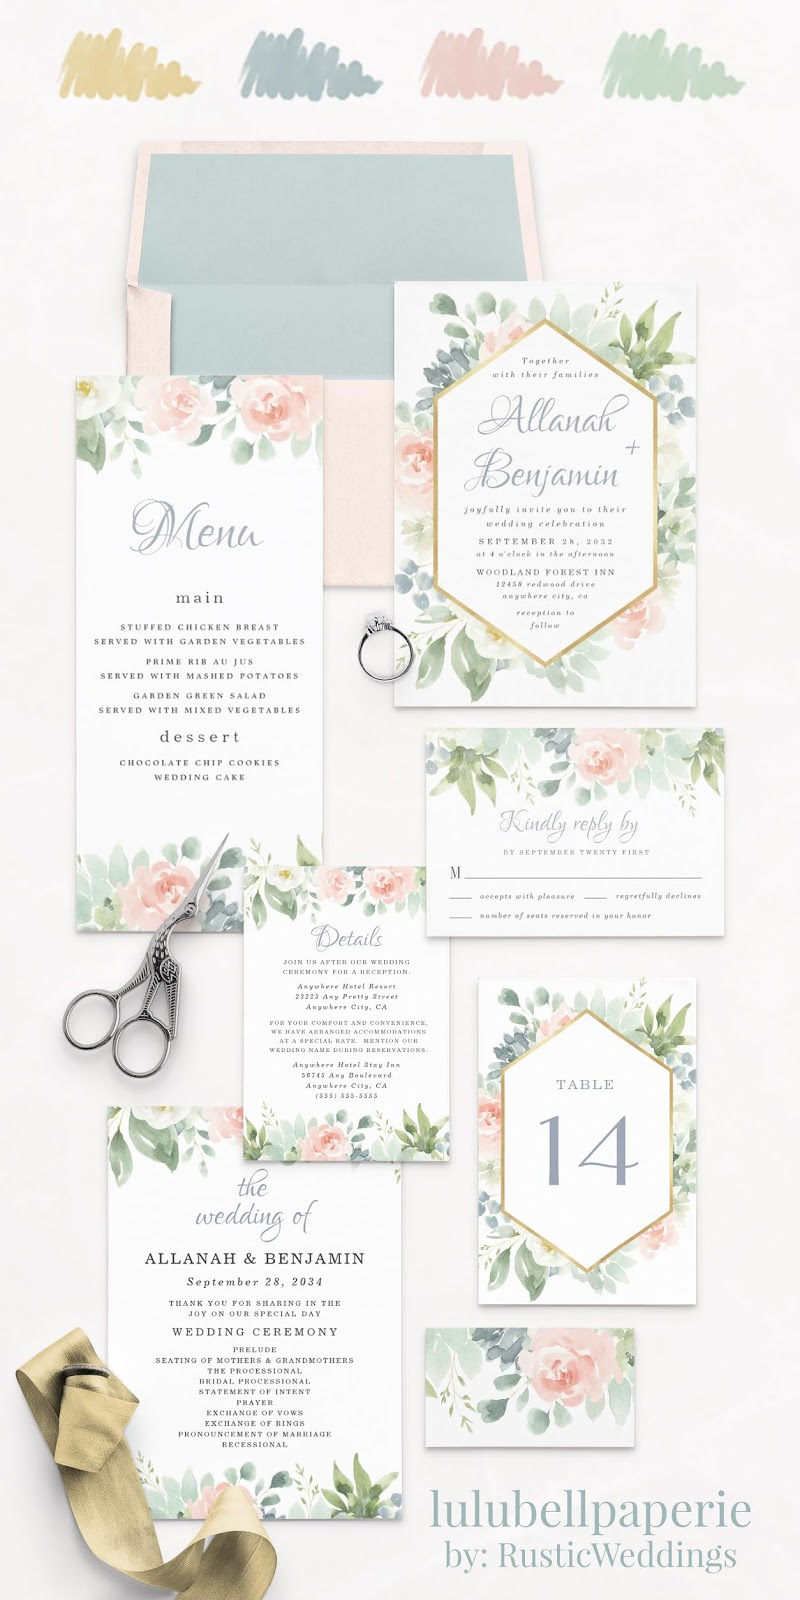 Dusty Blue Blush Pink and Green Succulent Floral Wedding Invitation Suite